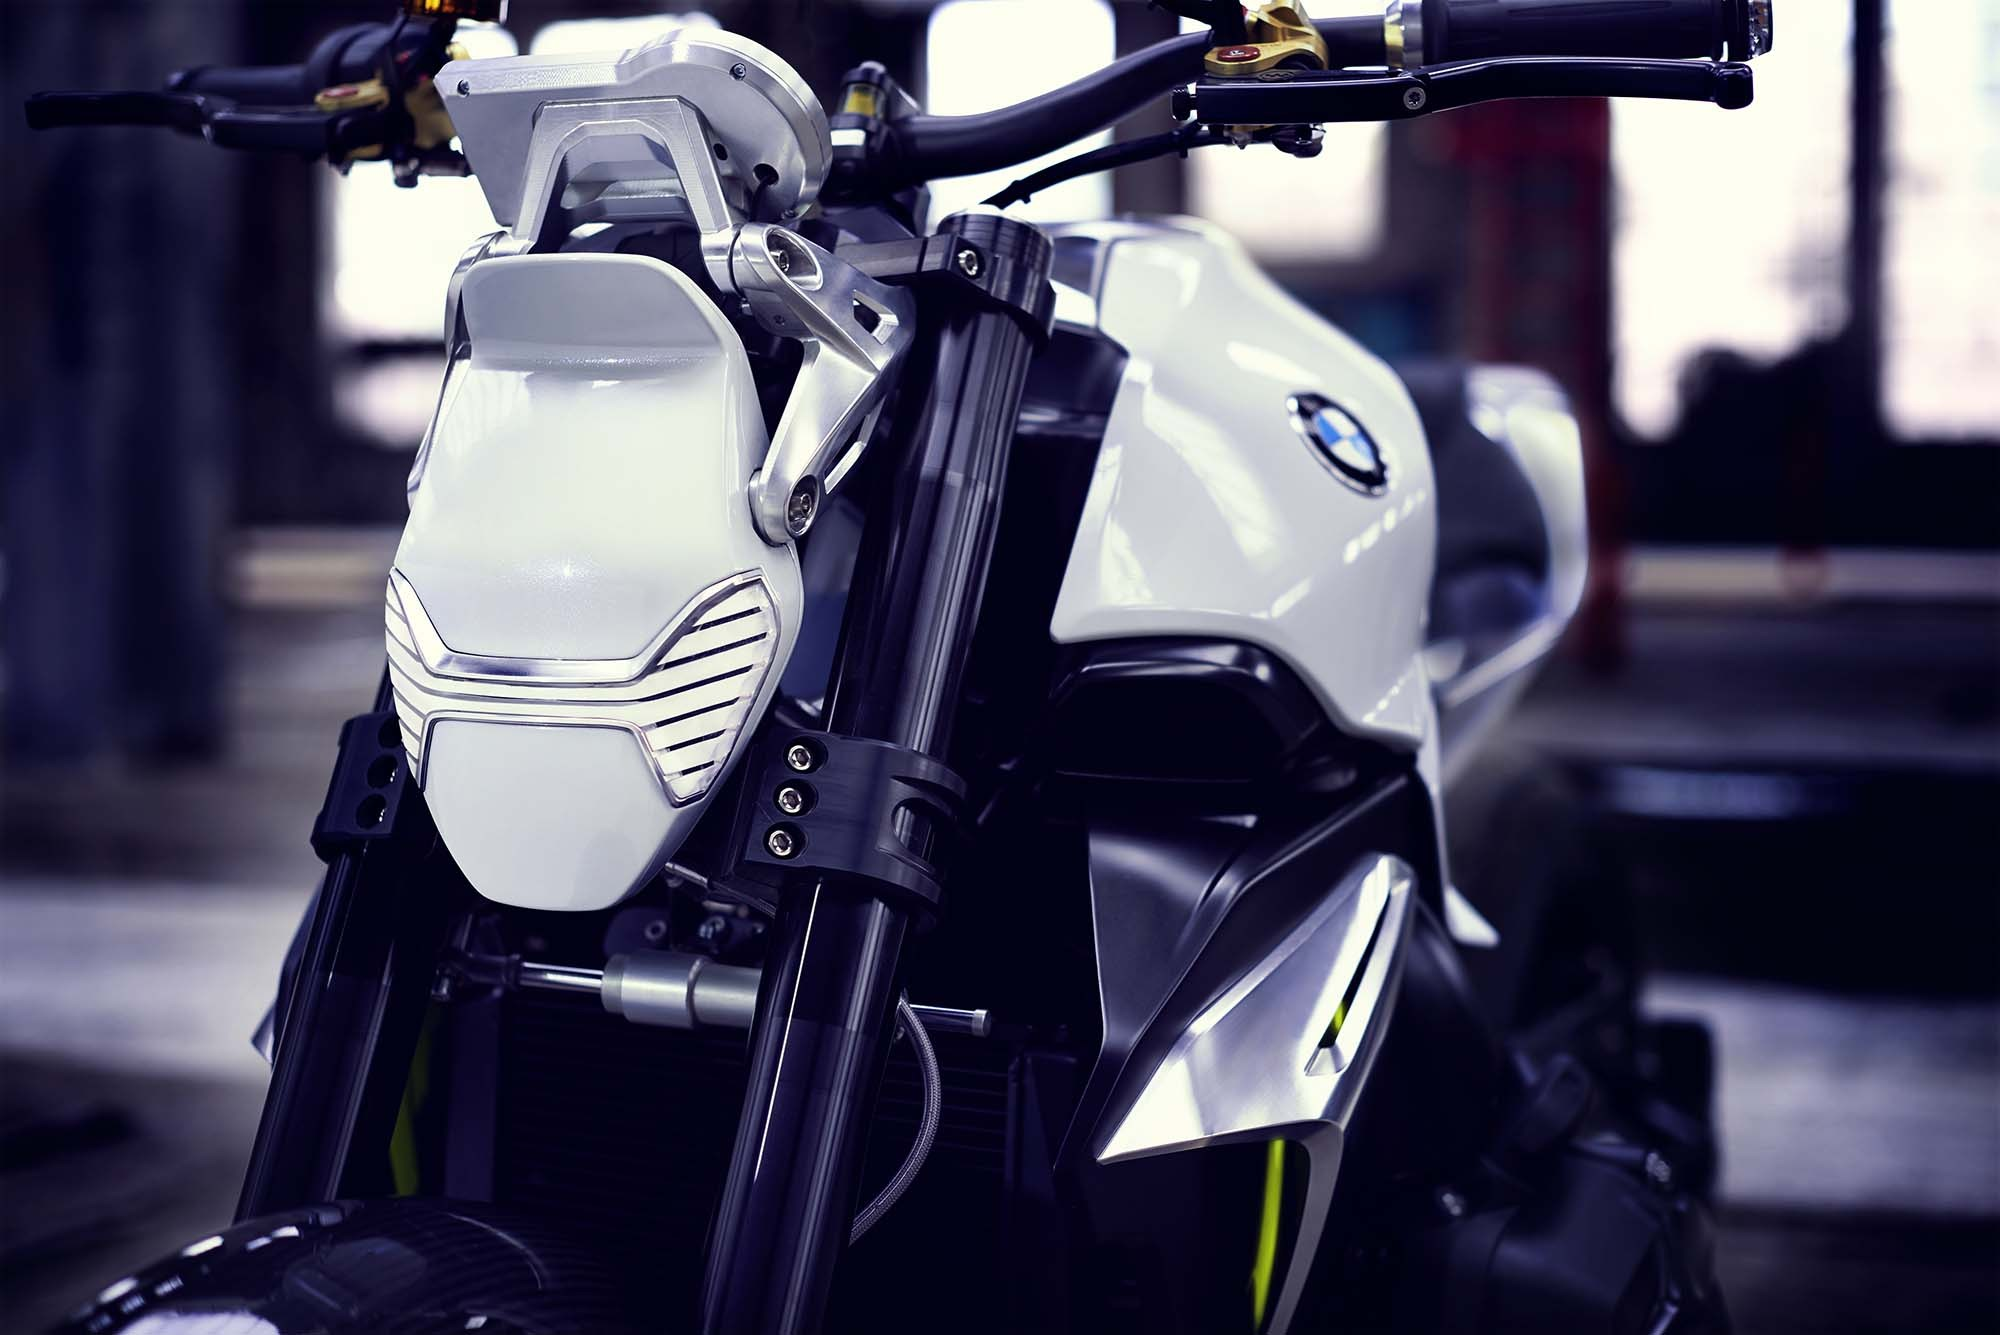 71110 Extraordinary Bmw R 1200 R Street Fighter Cars Trend